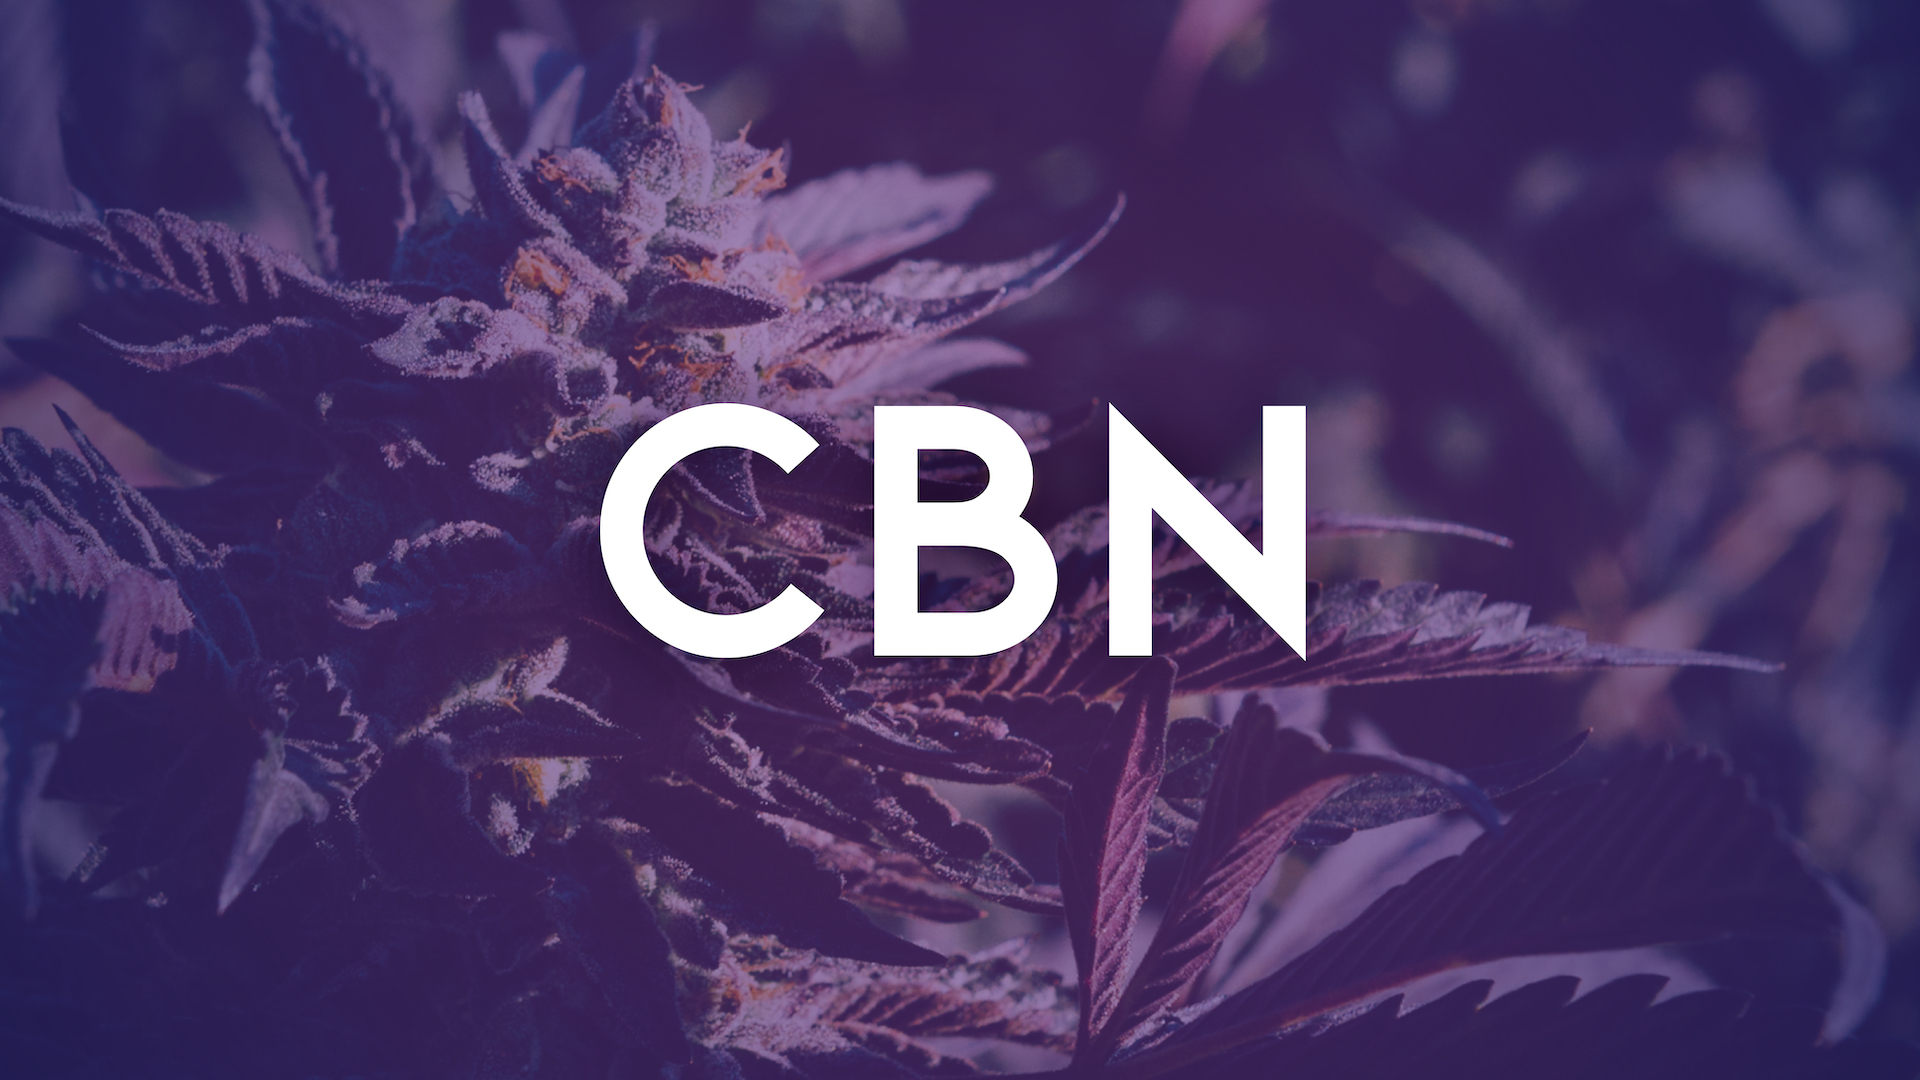 There are hundreds of Cannabinoids. Today we are highlighting CBN, the sleepy cannabinoid.